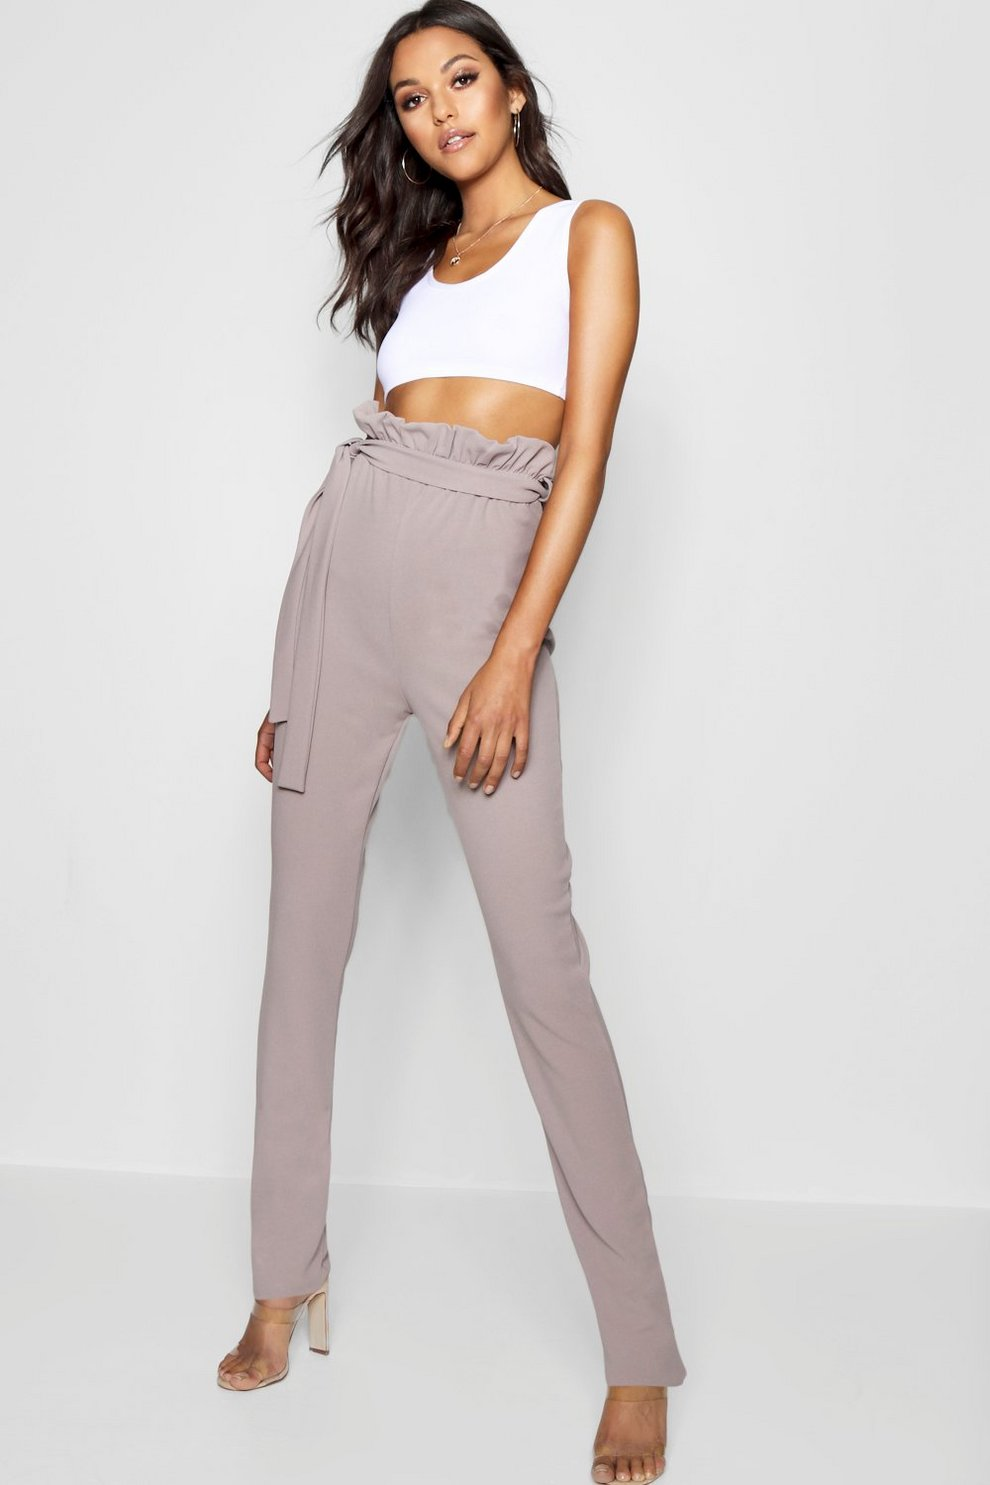 Boohoo Tall Belted Skinny Trousers Free Shipping Collections VBFnLBu